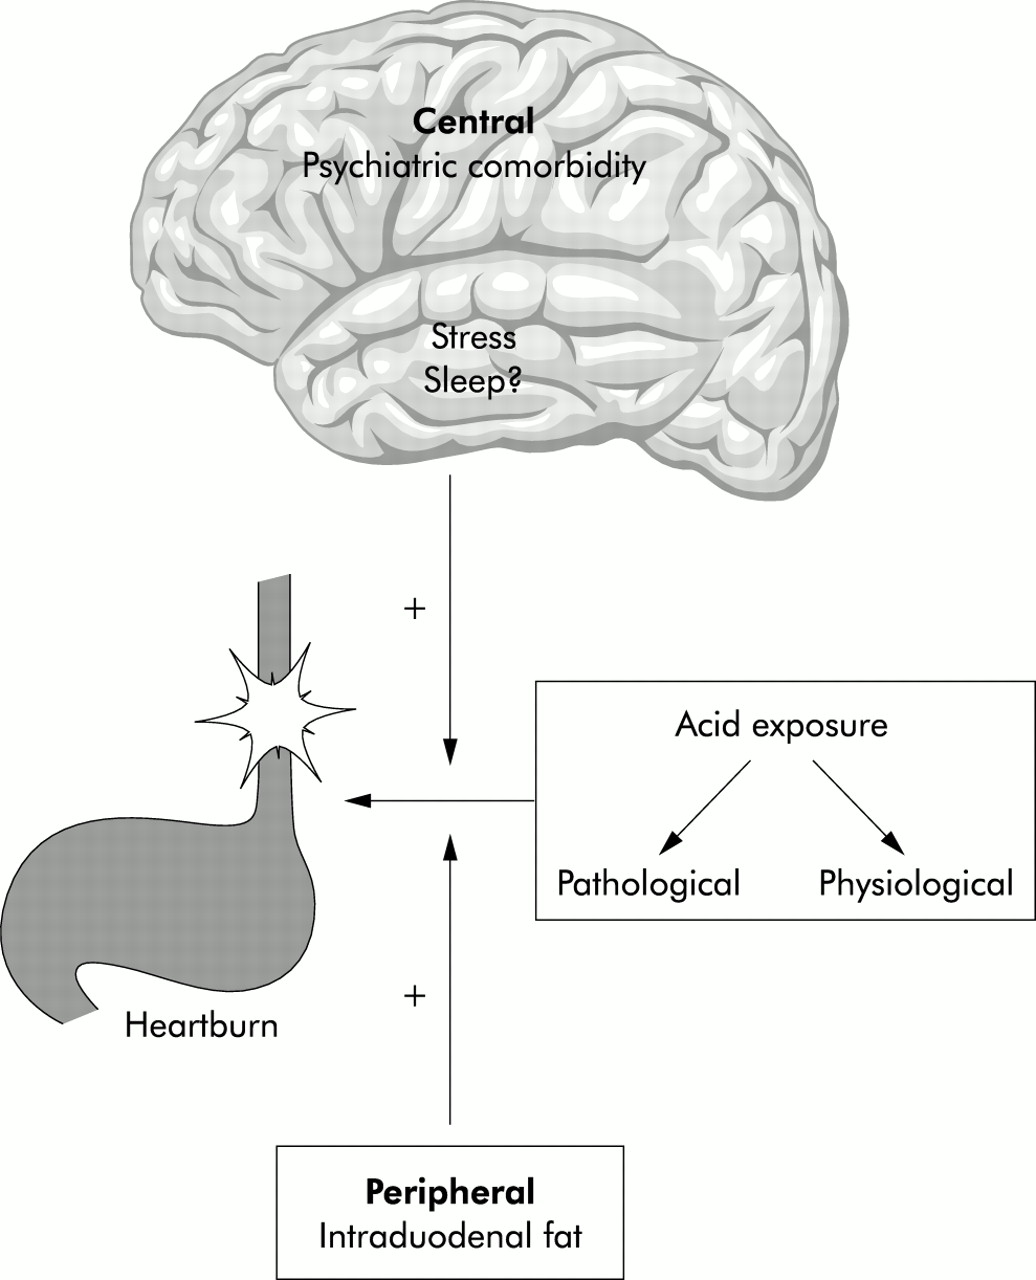 Functional heartburn: the stimulus, the pain, and the brain